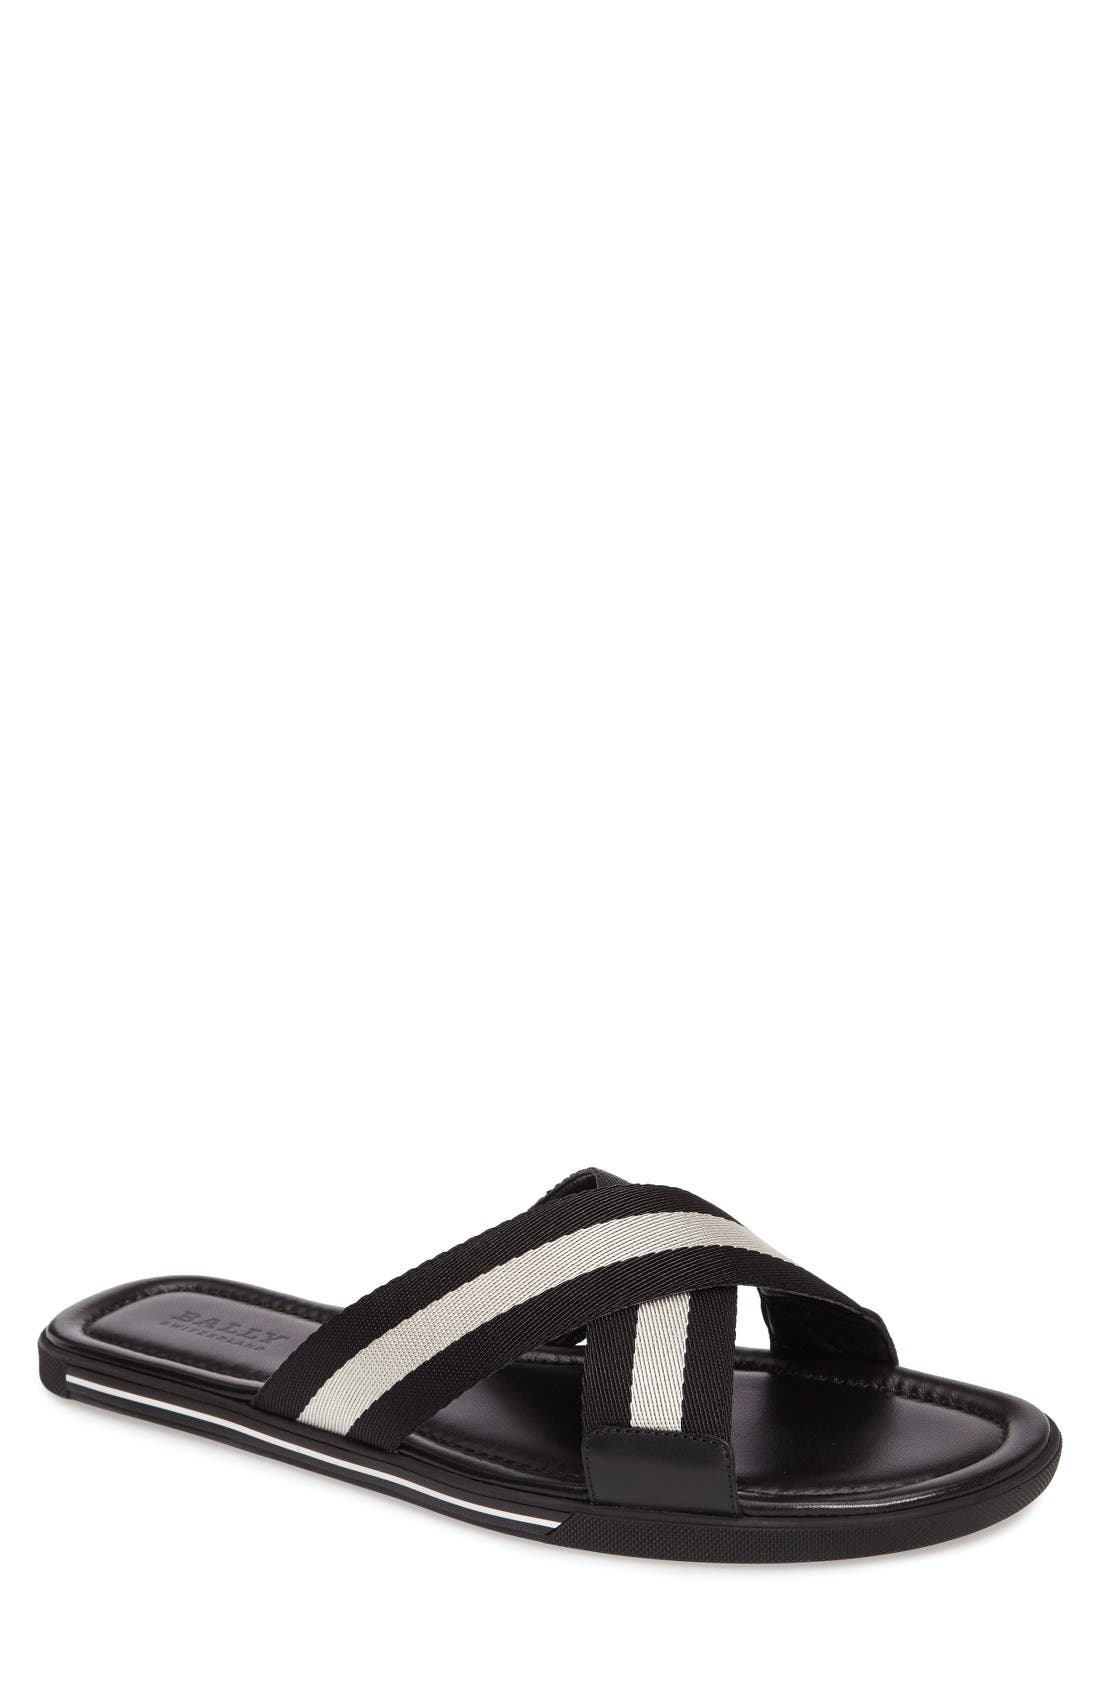 Bonks Slide Sandal,                             Main thumbnail 1, color,                             Black/ Bone